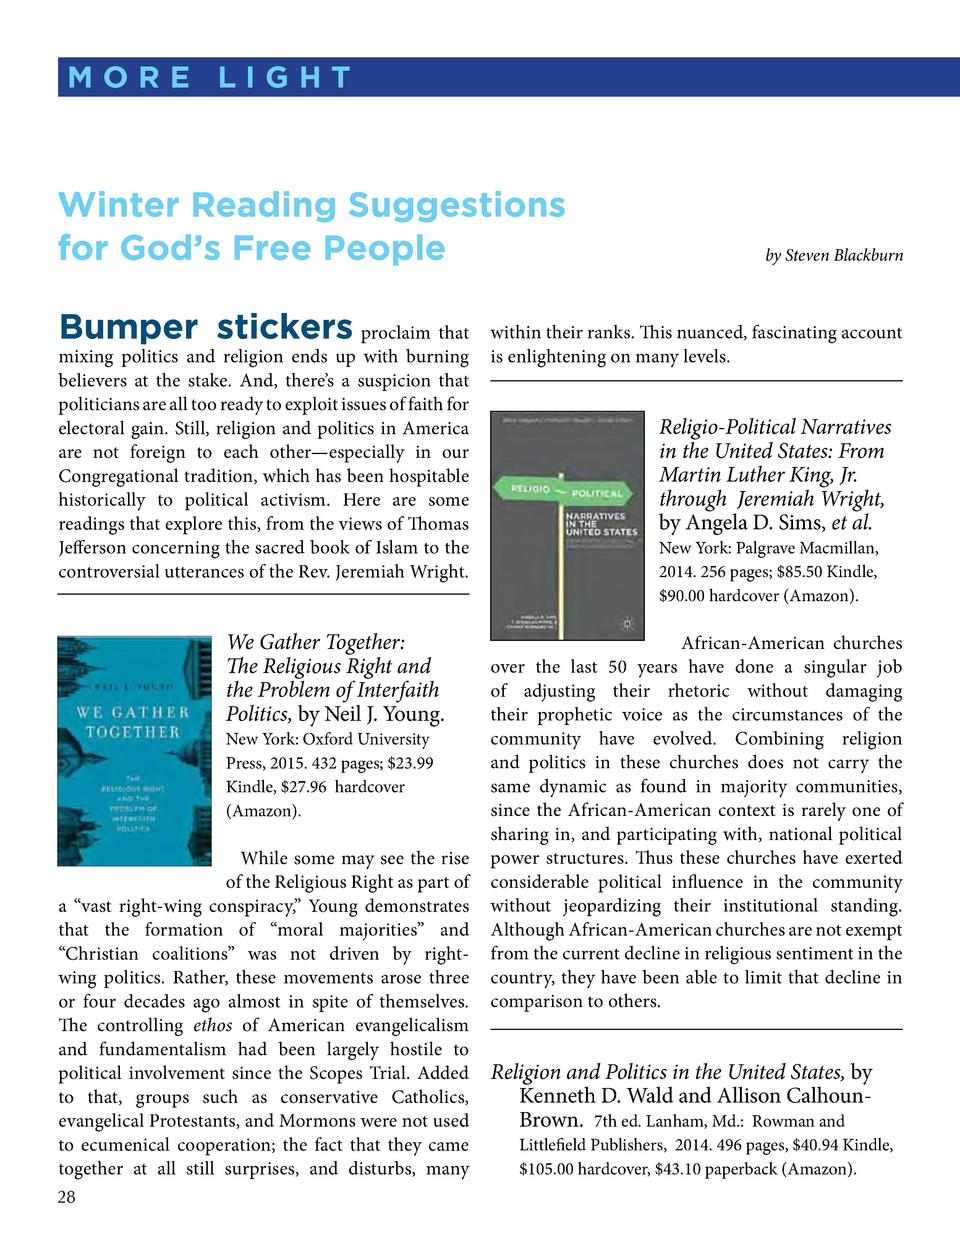 M ORE LIGHT  Winter Reading Suggestions for God   s Free People Bumper stickers  proclaim that mixing politics and religio...